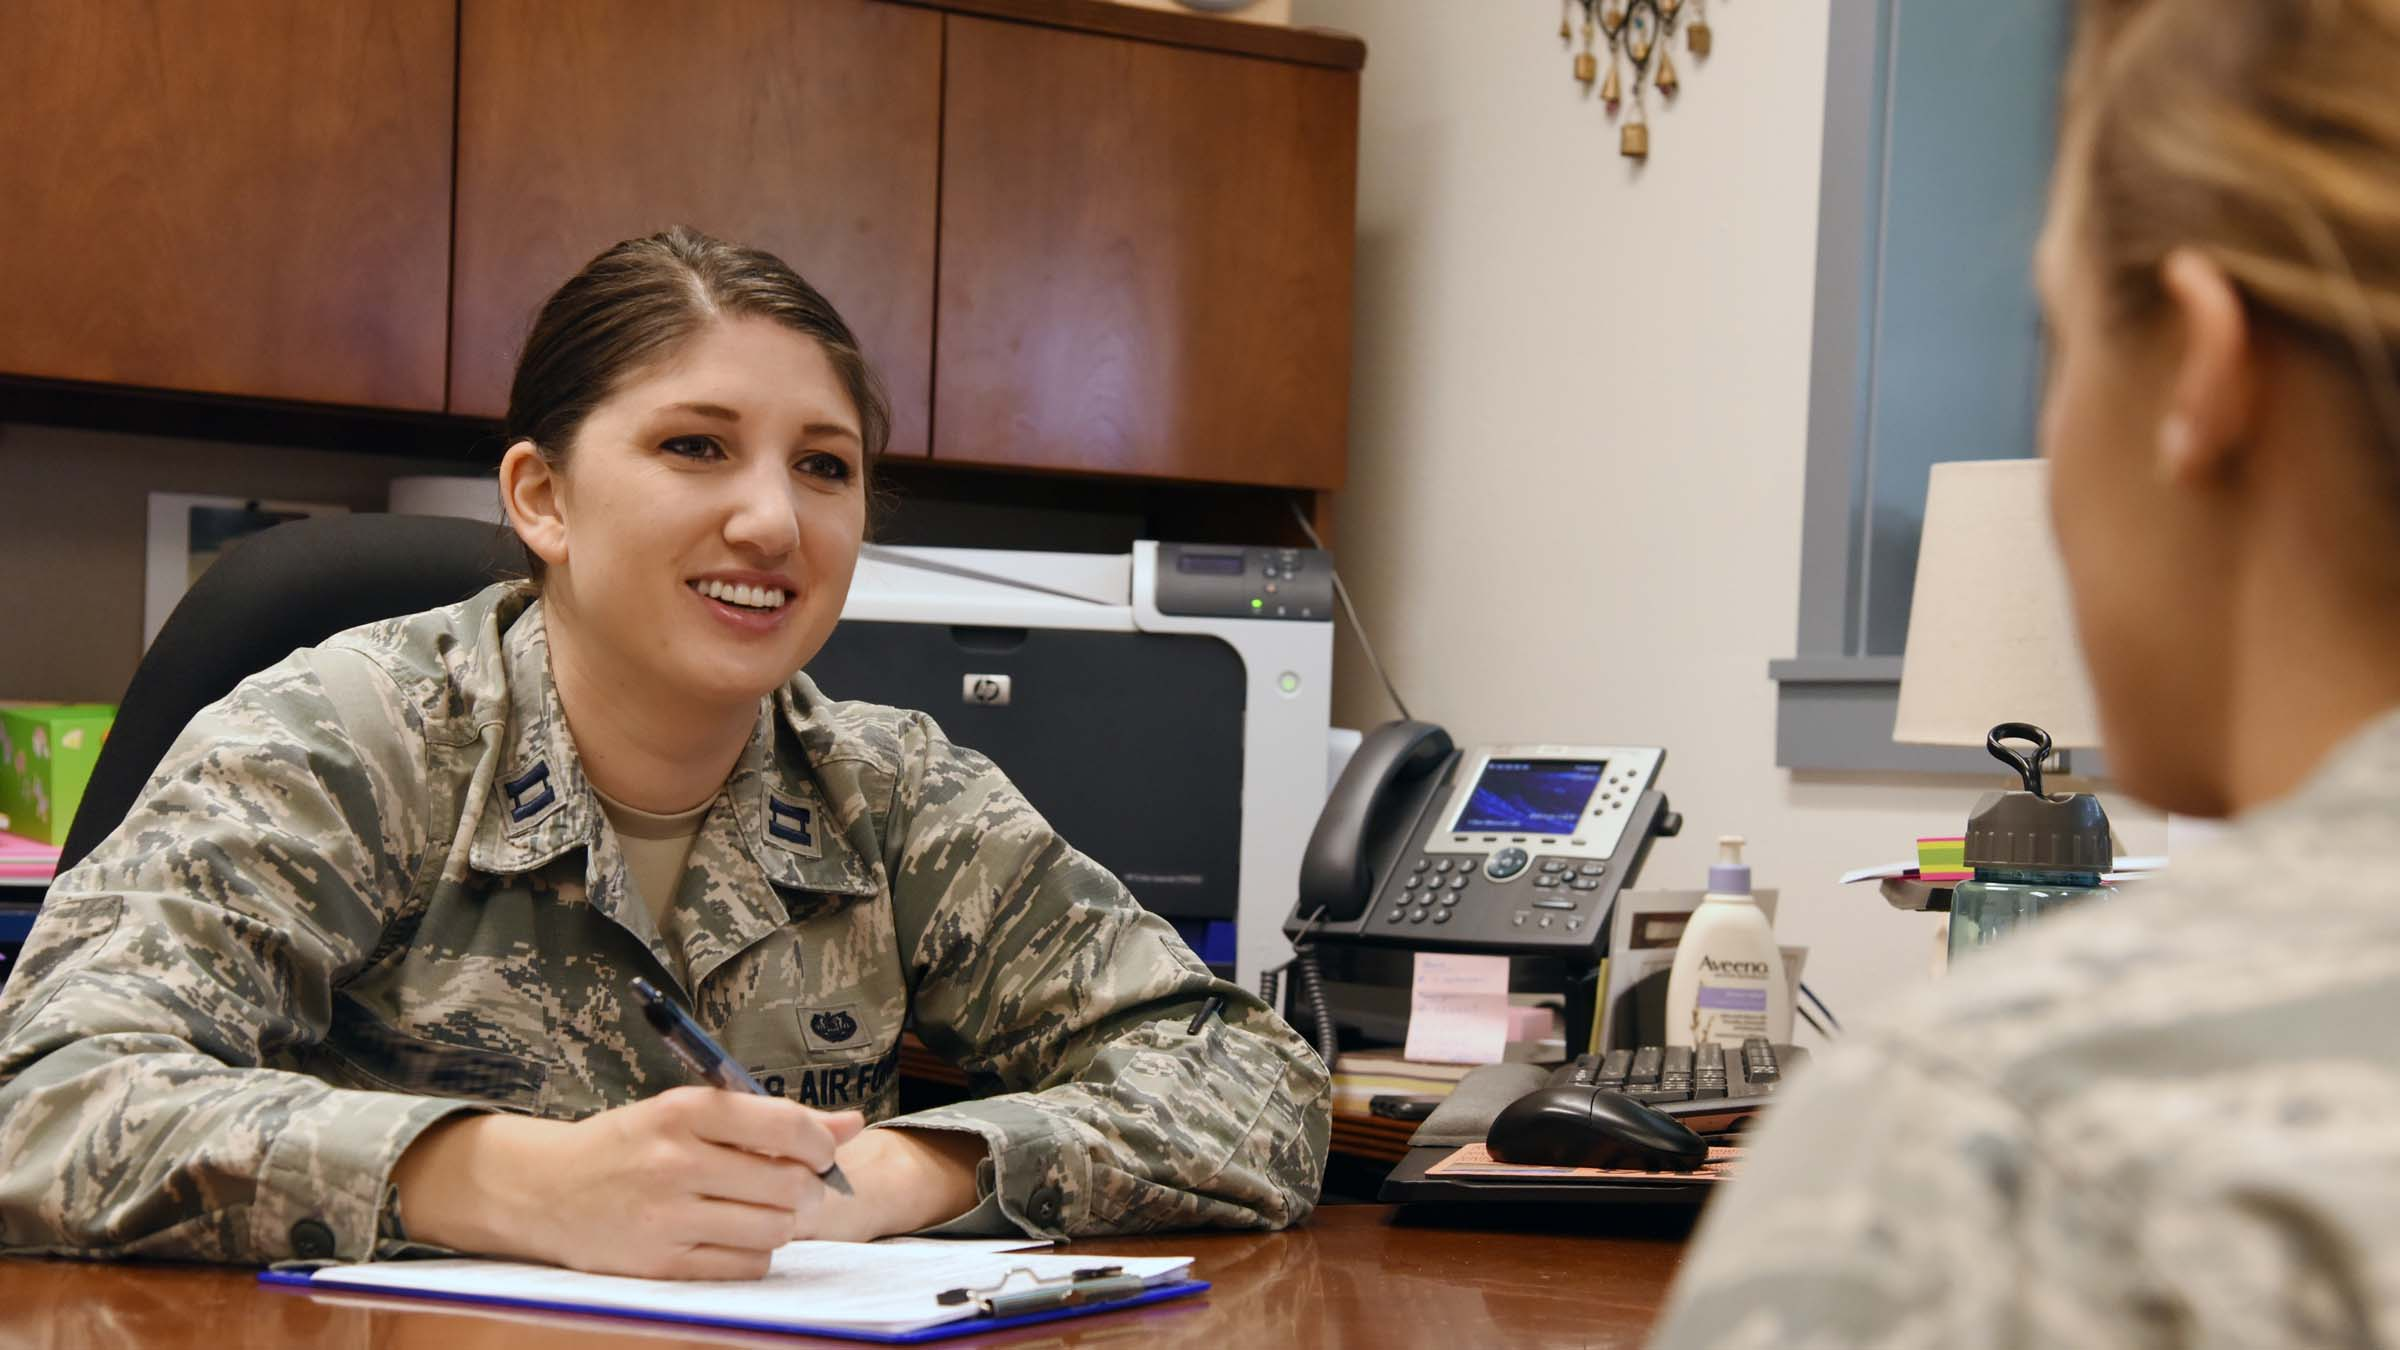 Military lawyer helping service member